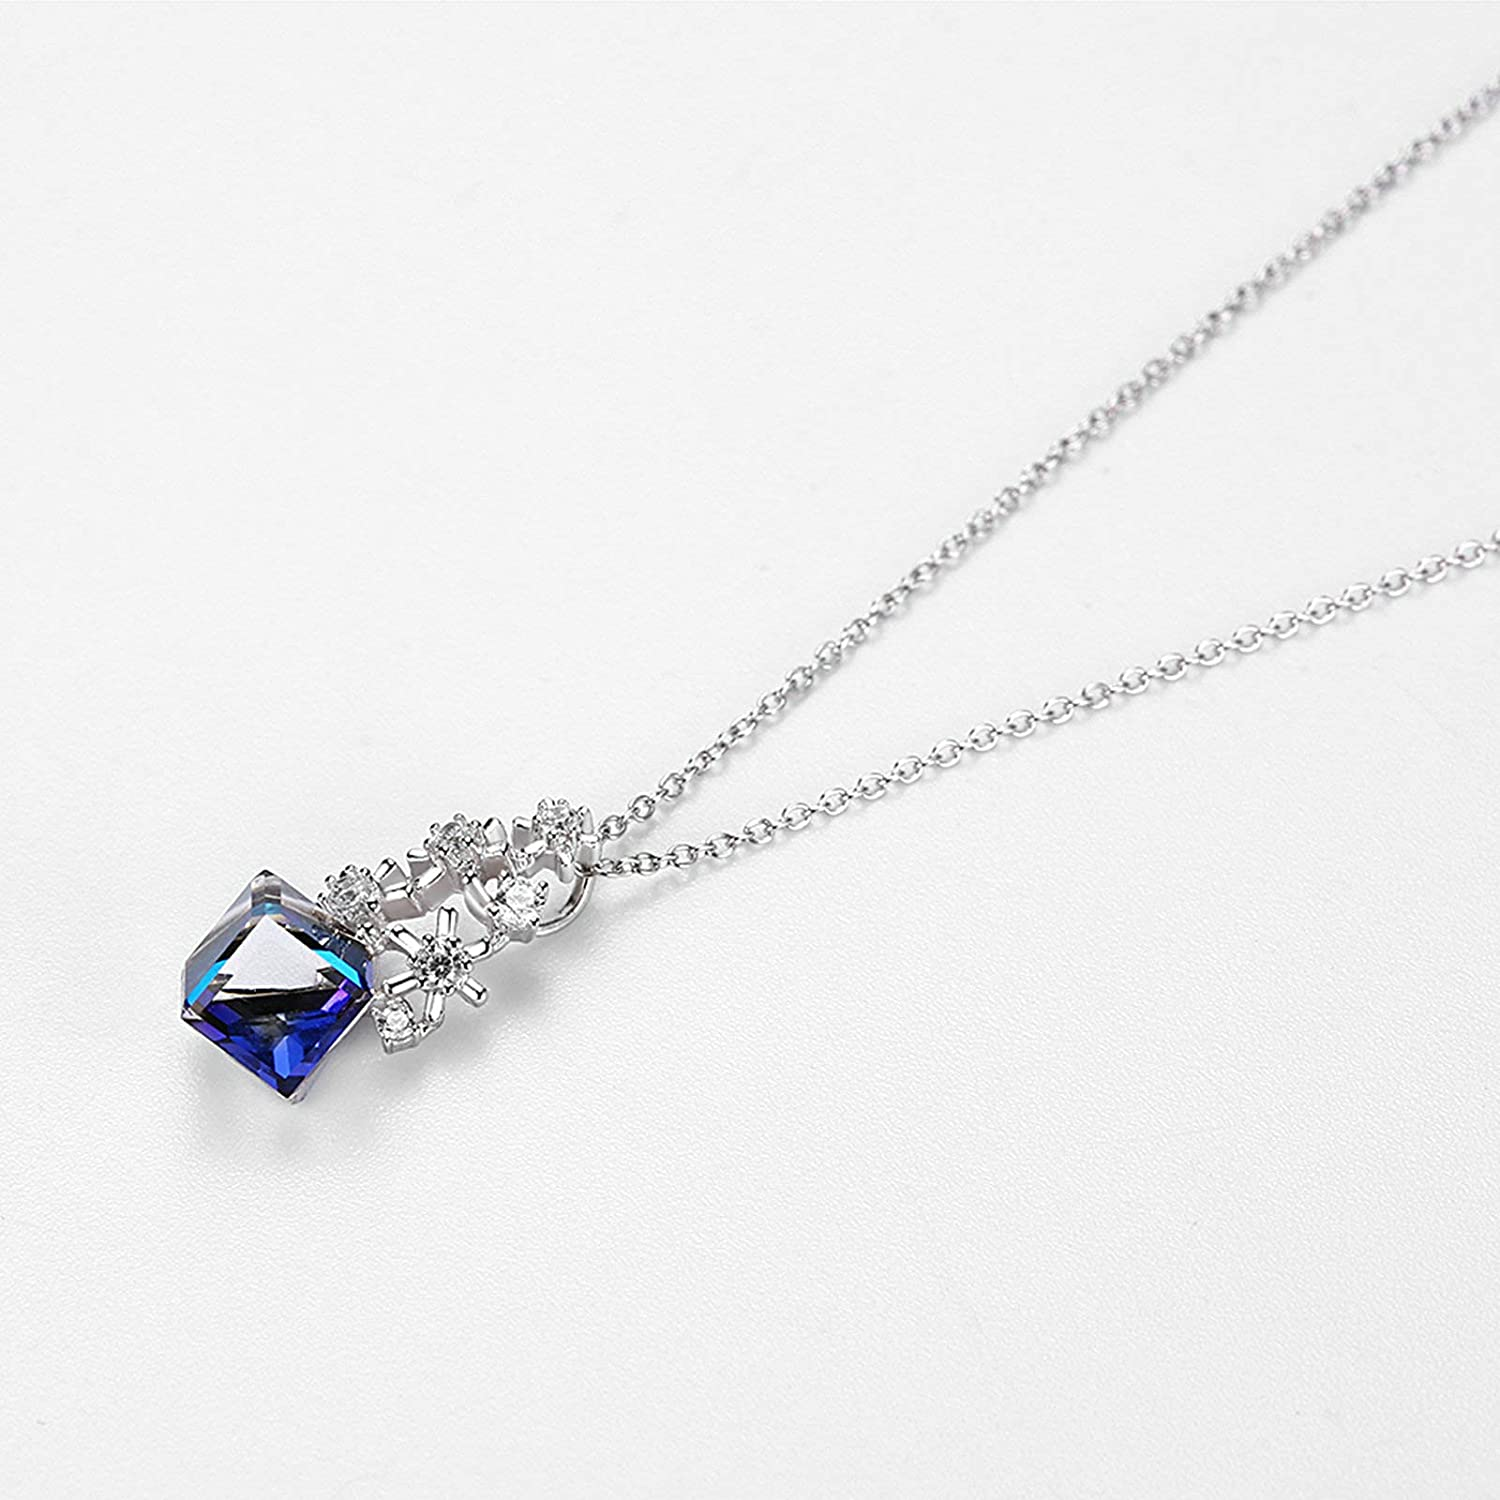 Aooaz Jewelry Pendant Necklaces for Women Snowflakes Cube Silver Material Chain Necklaces